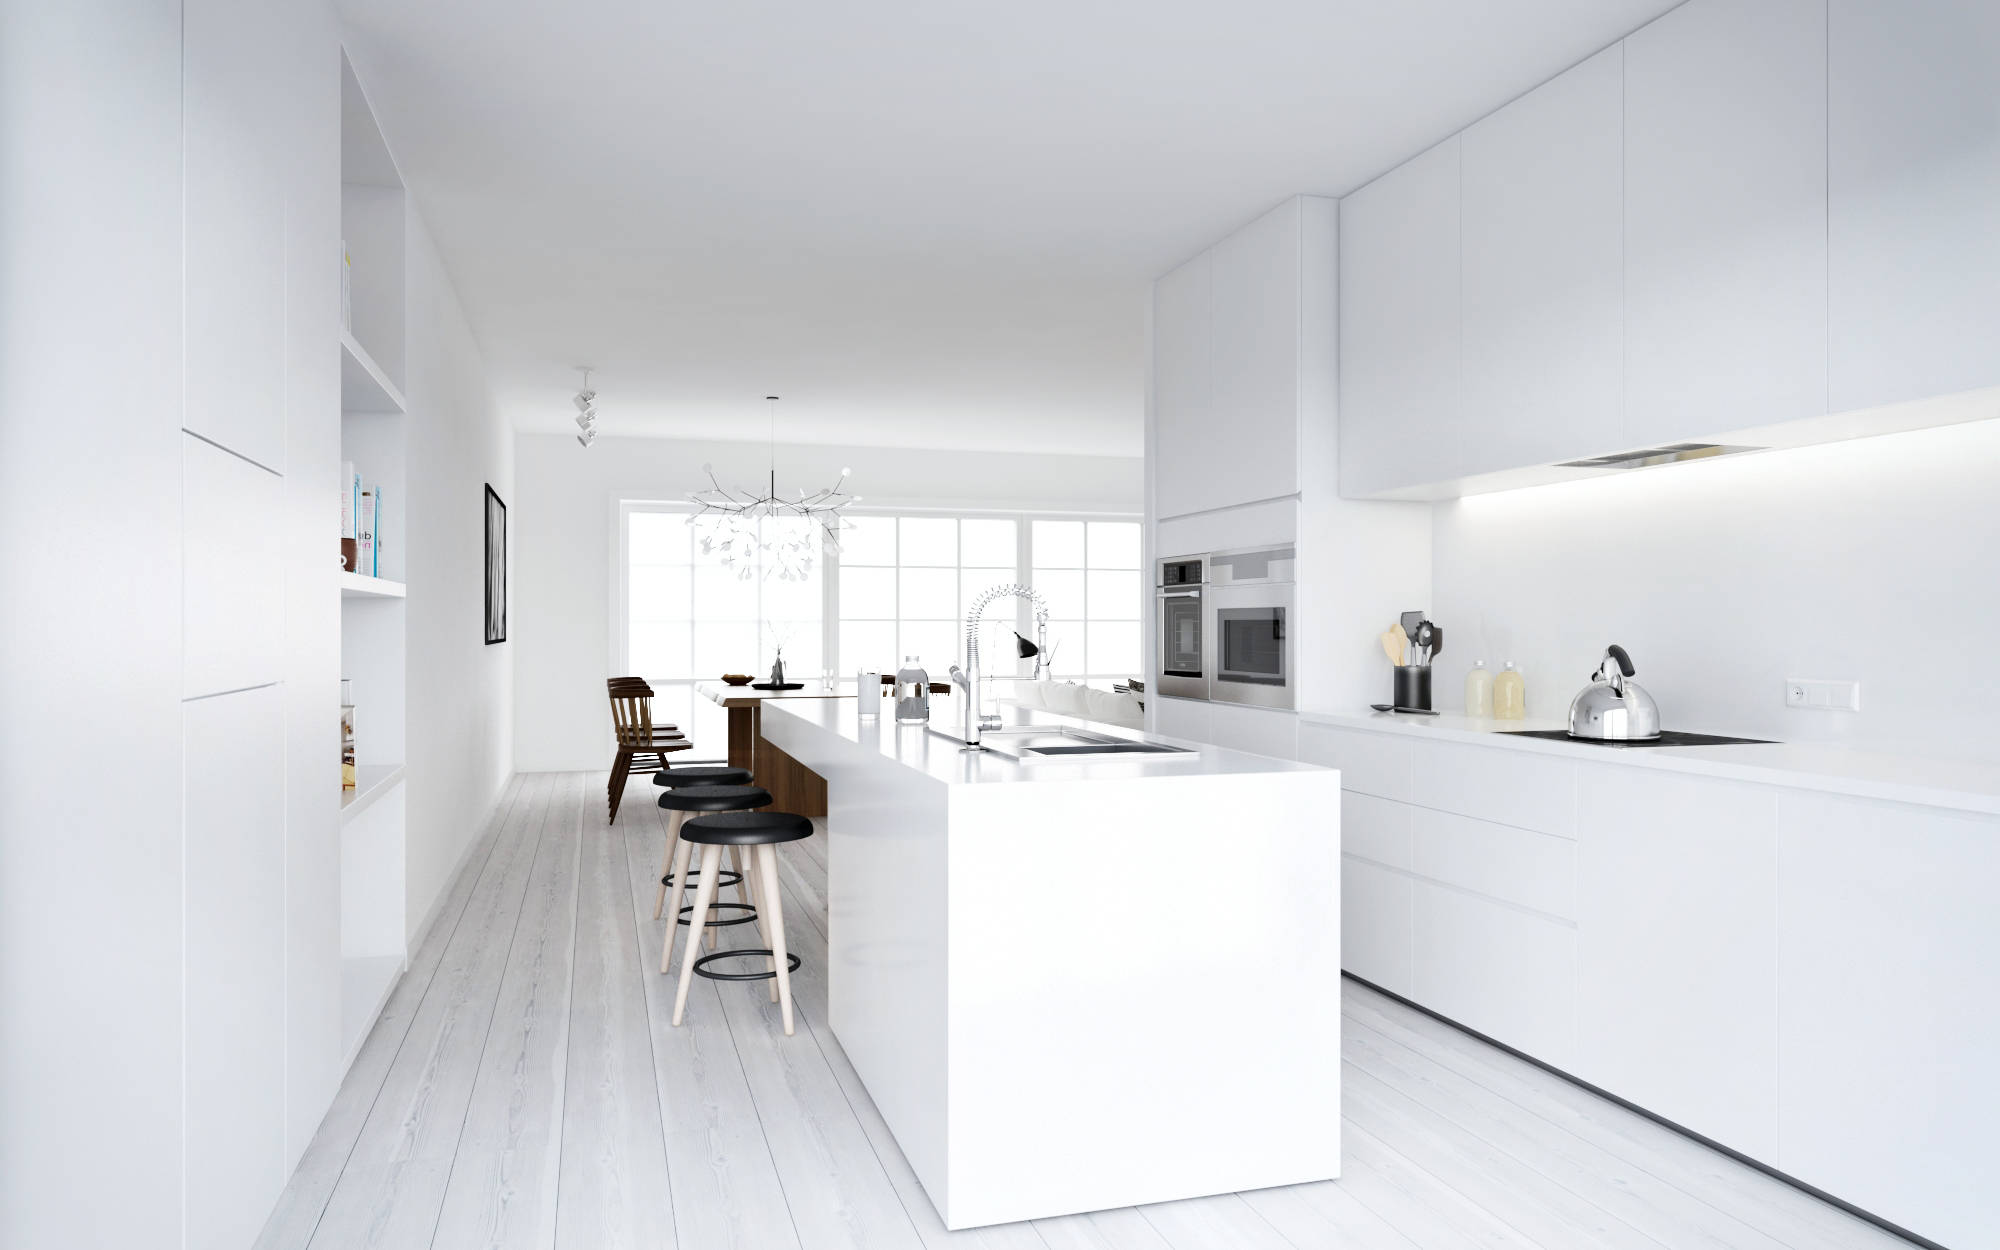 atdesign nordic style minimalist kitchen in white On white minimalist interior design